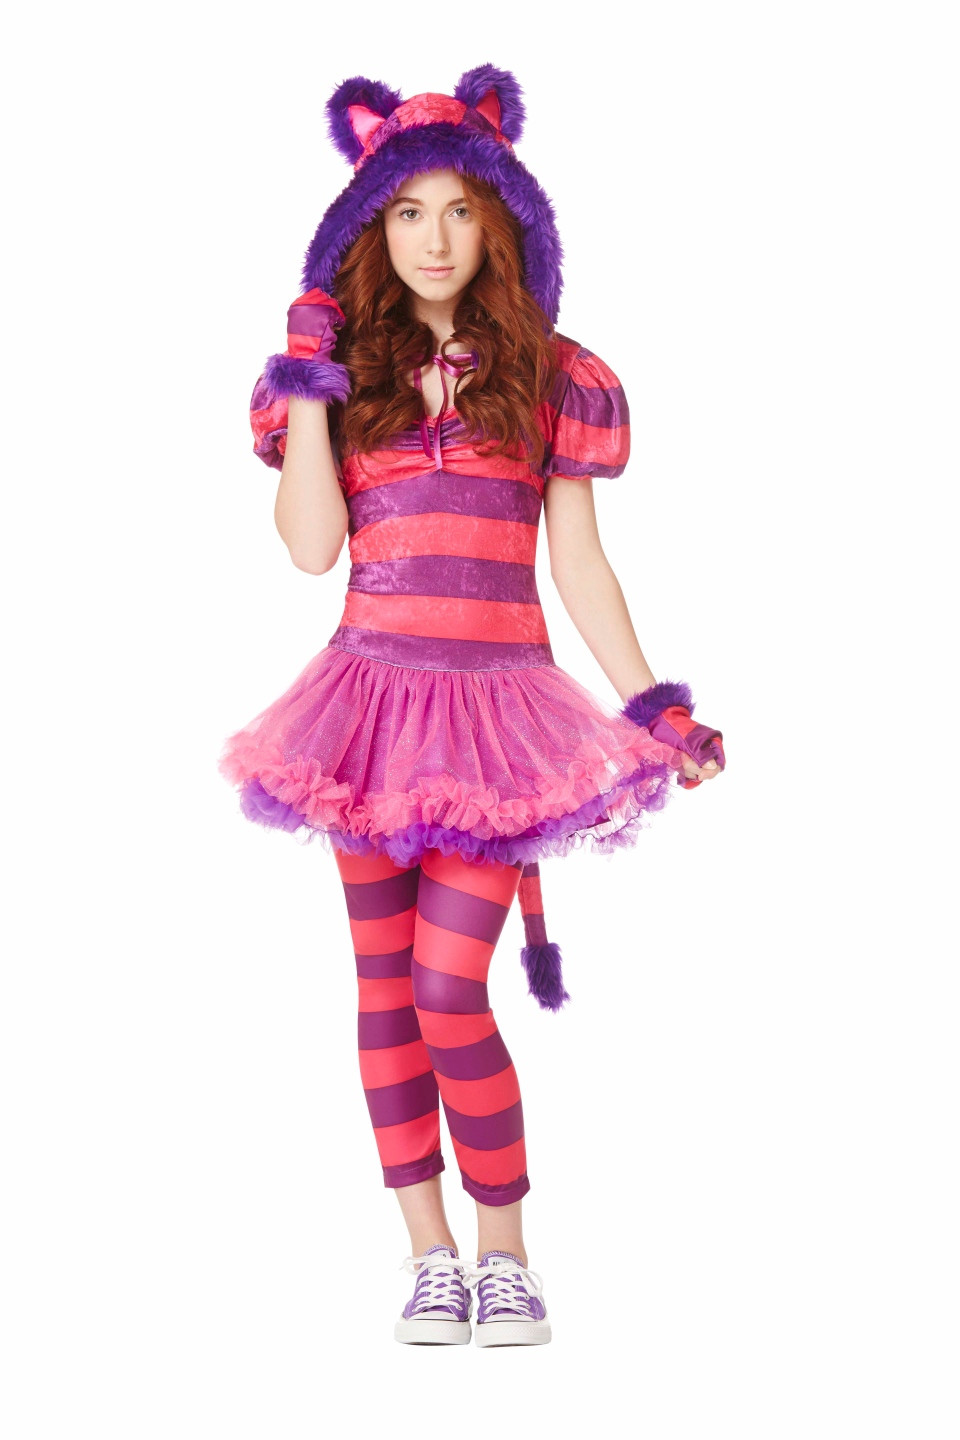 Halloween Party Ideas For 10 Year Olds  Finding age appropriate Halloween costumes not always easy